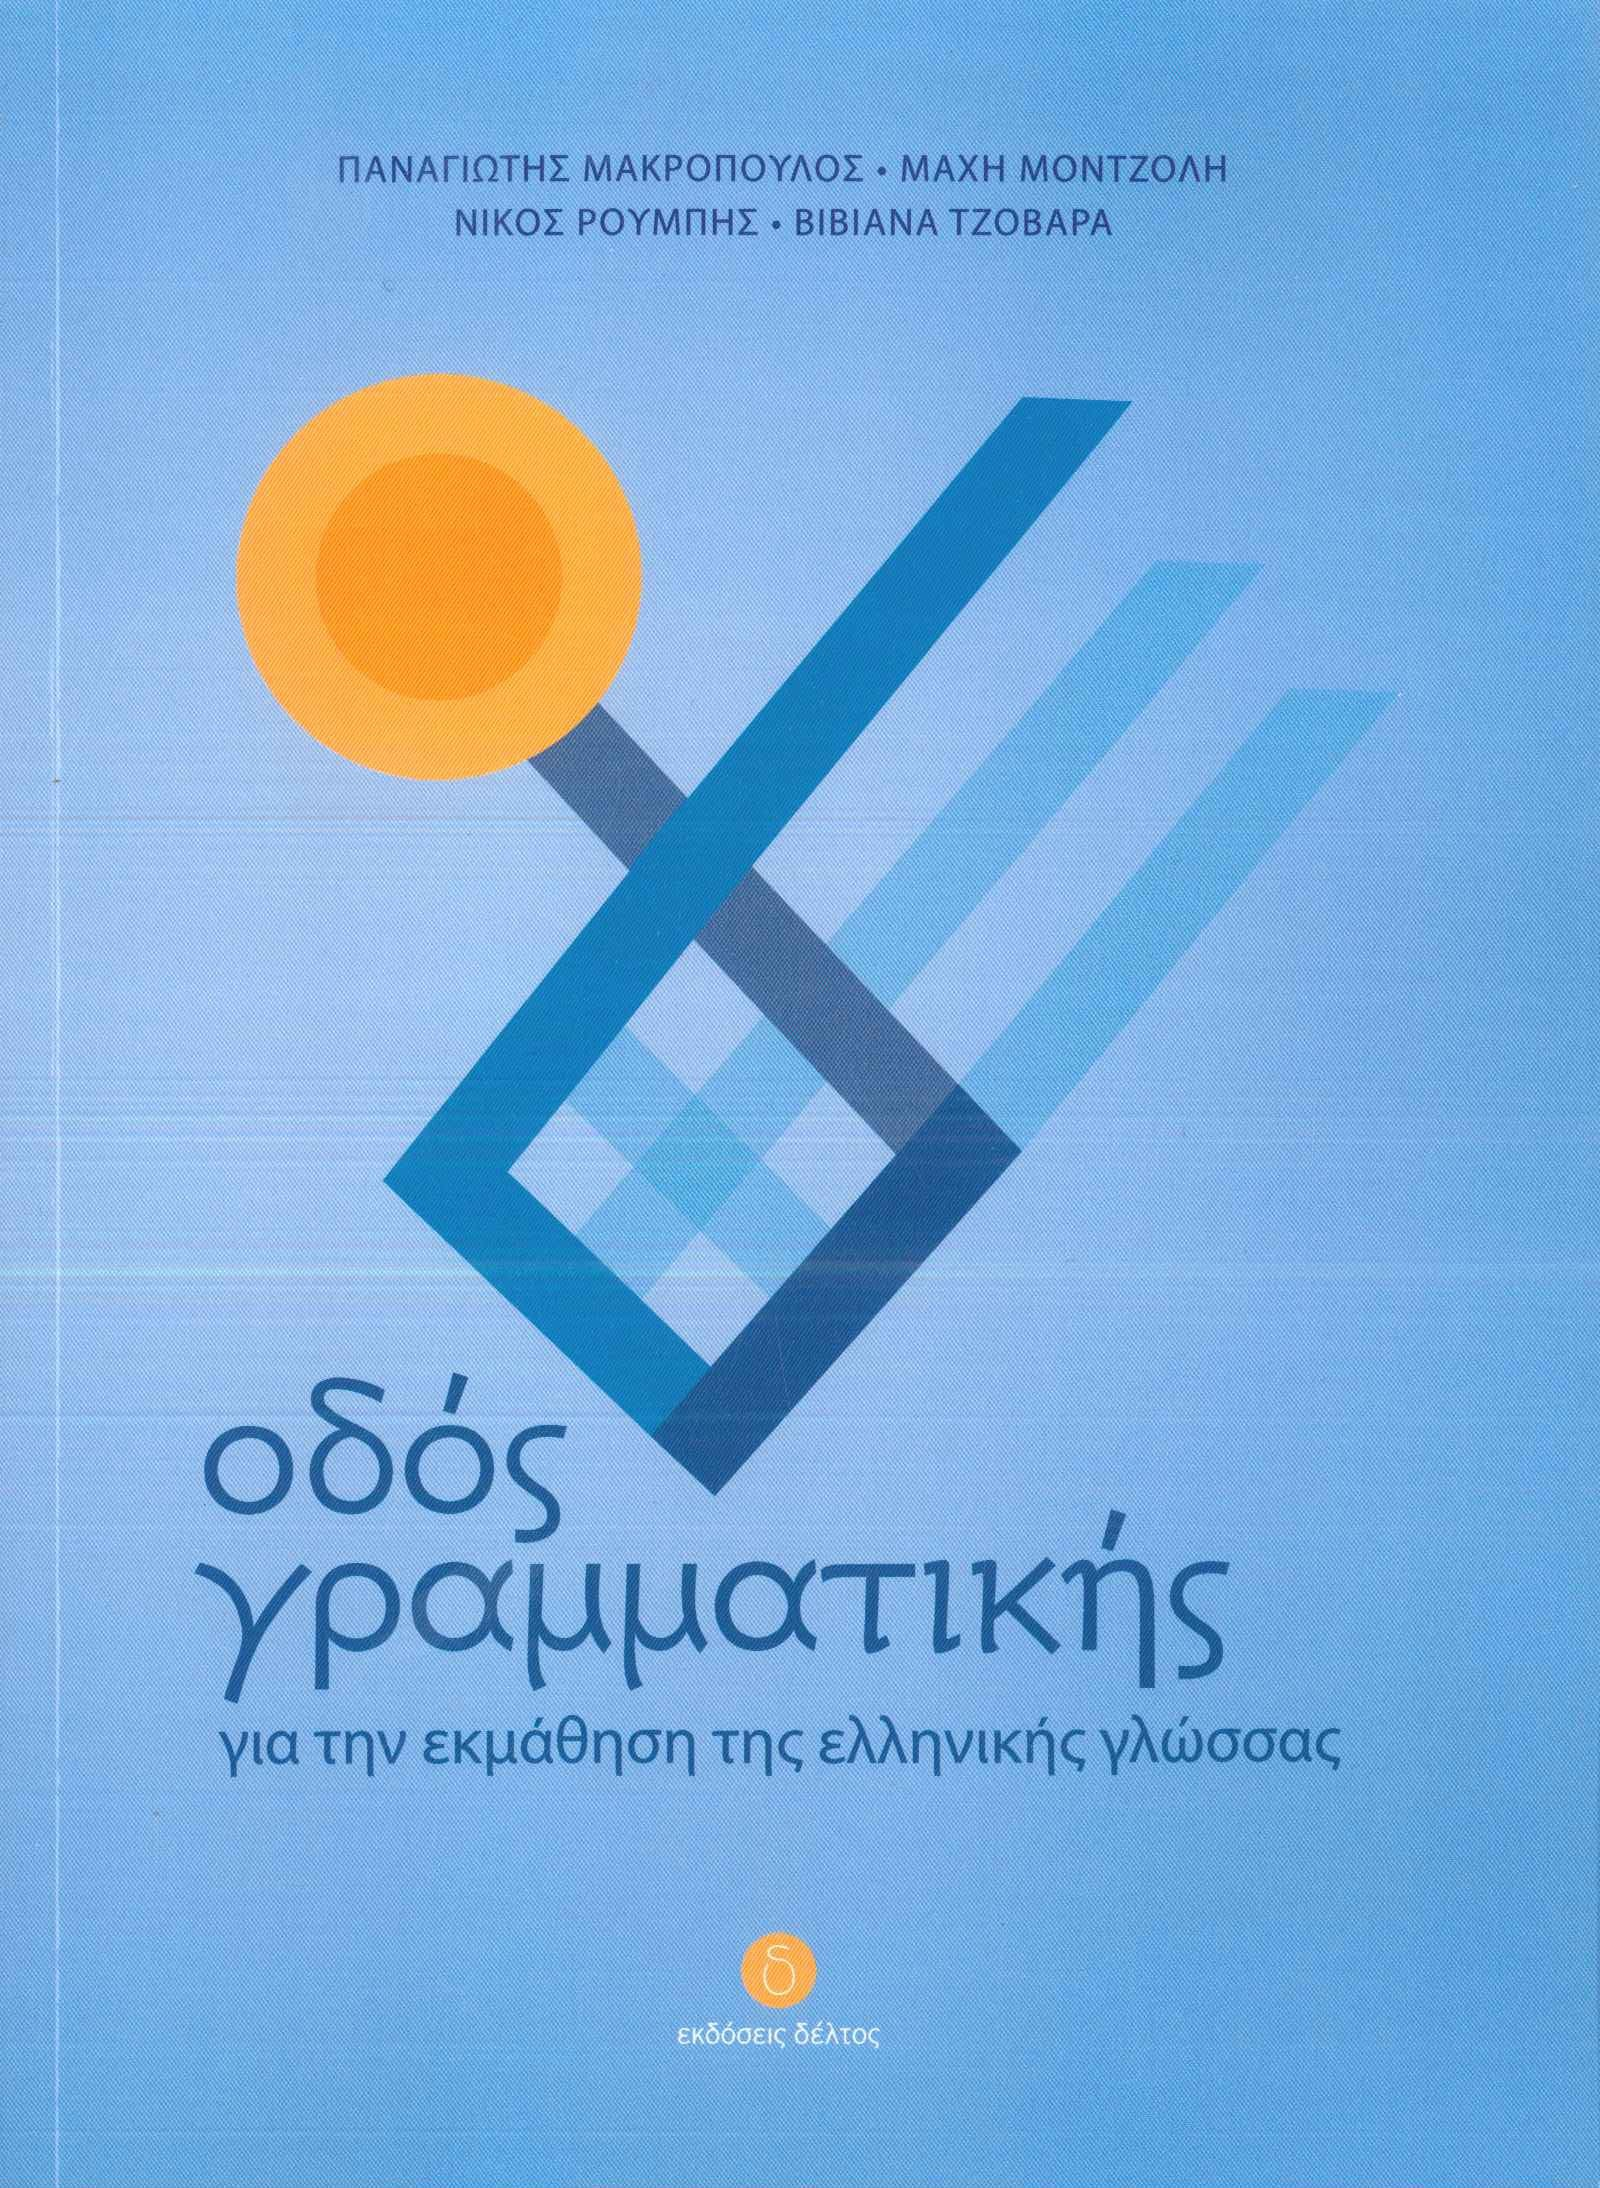 Odos Grammatikis: your companion when learning modern Greek 9789607914439